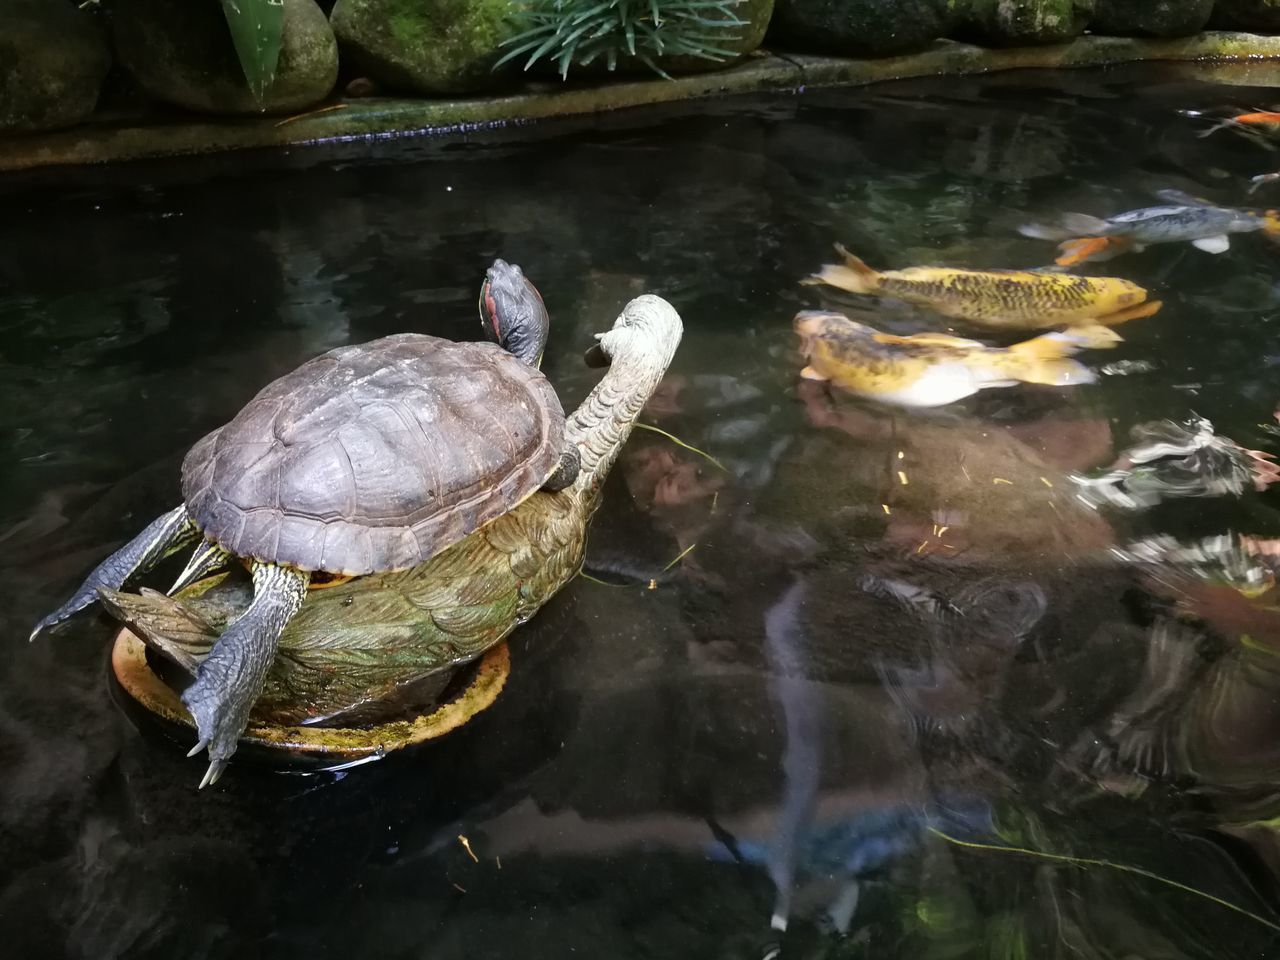 Turtle Meditation Turtles One Utama Natural Animals In The Wild